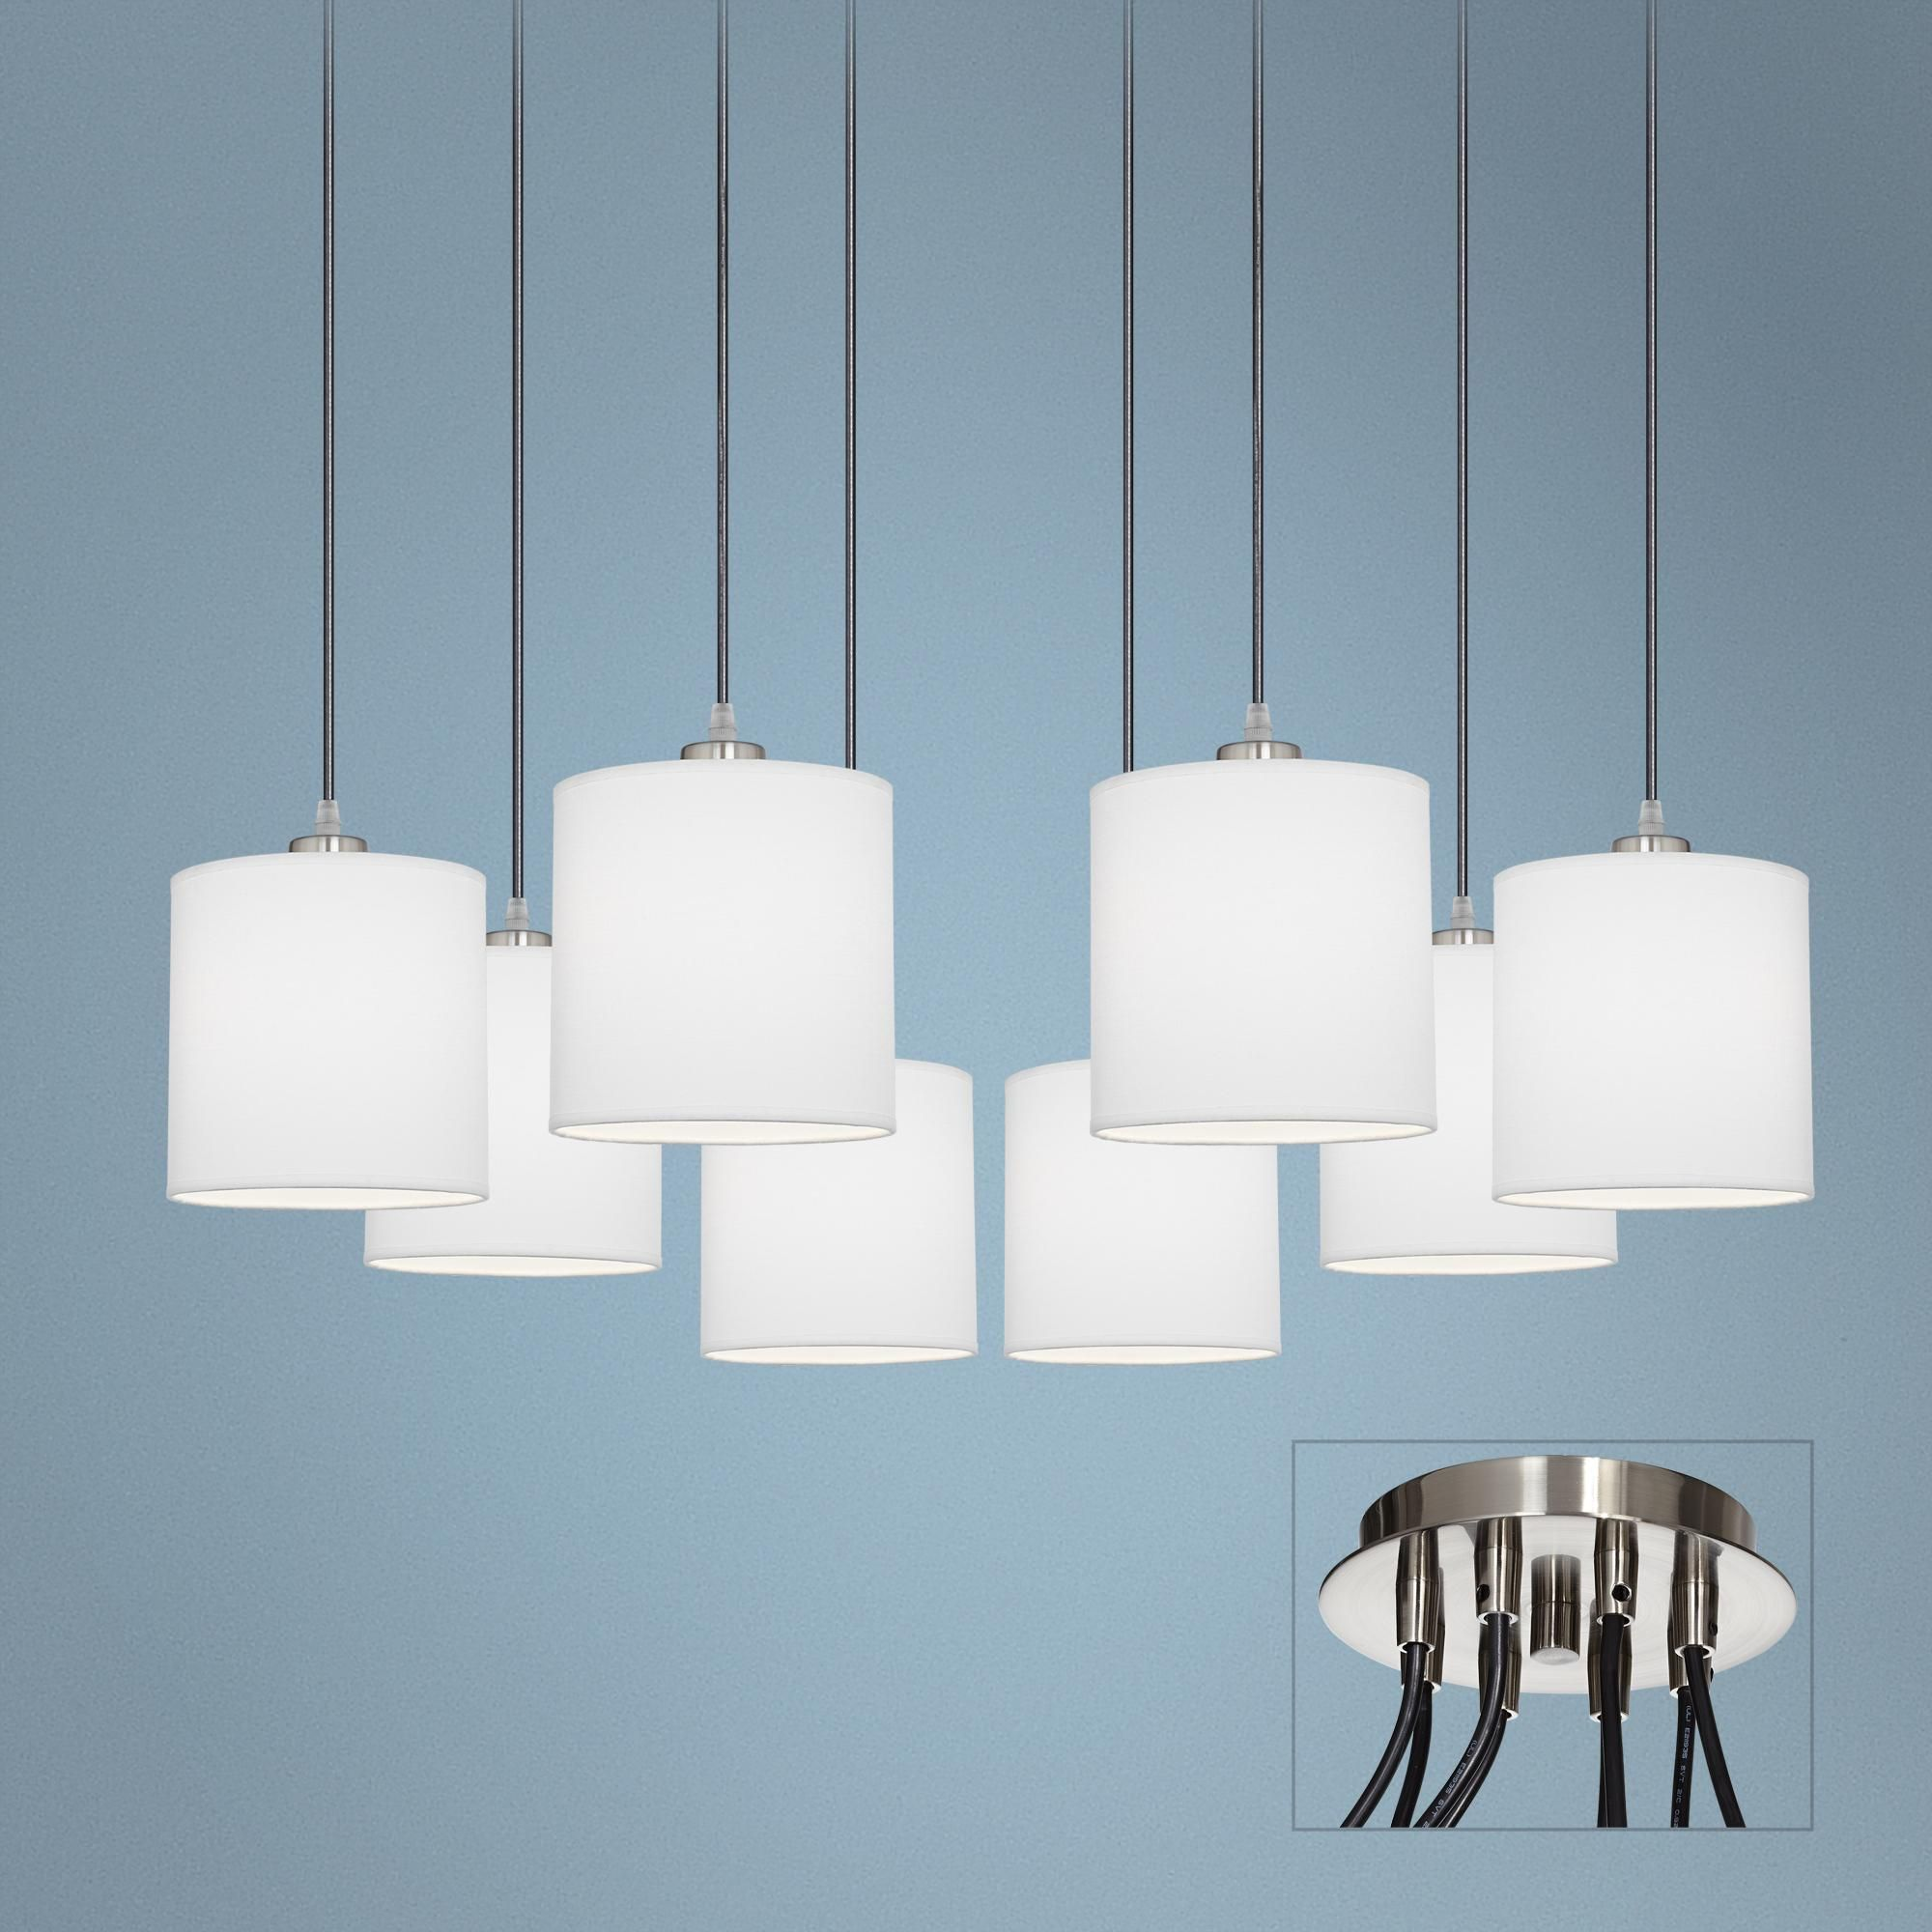 Otta 8-Light Adjustable Swag Chandelier - | lighting | Pinterest ...